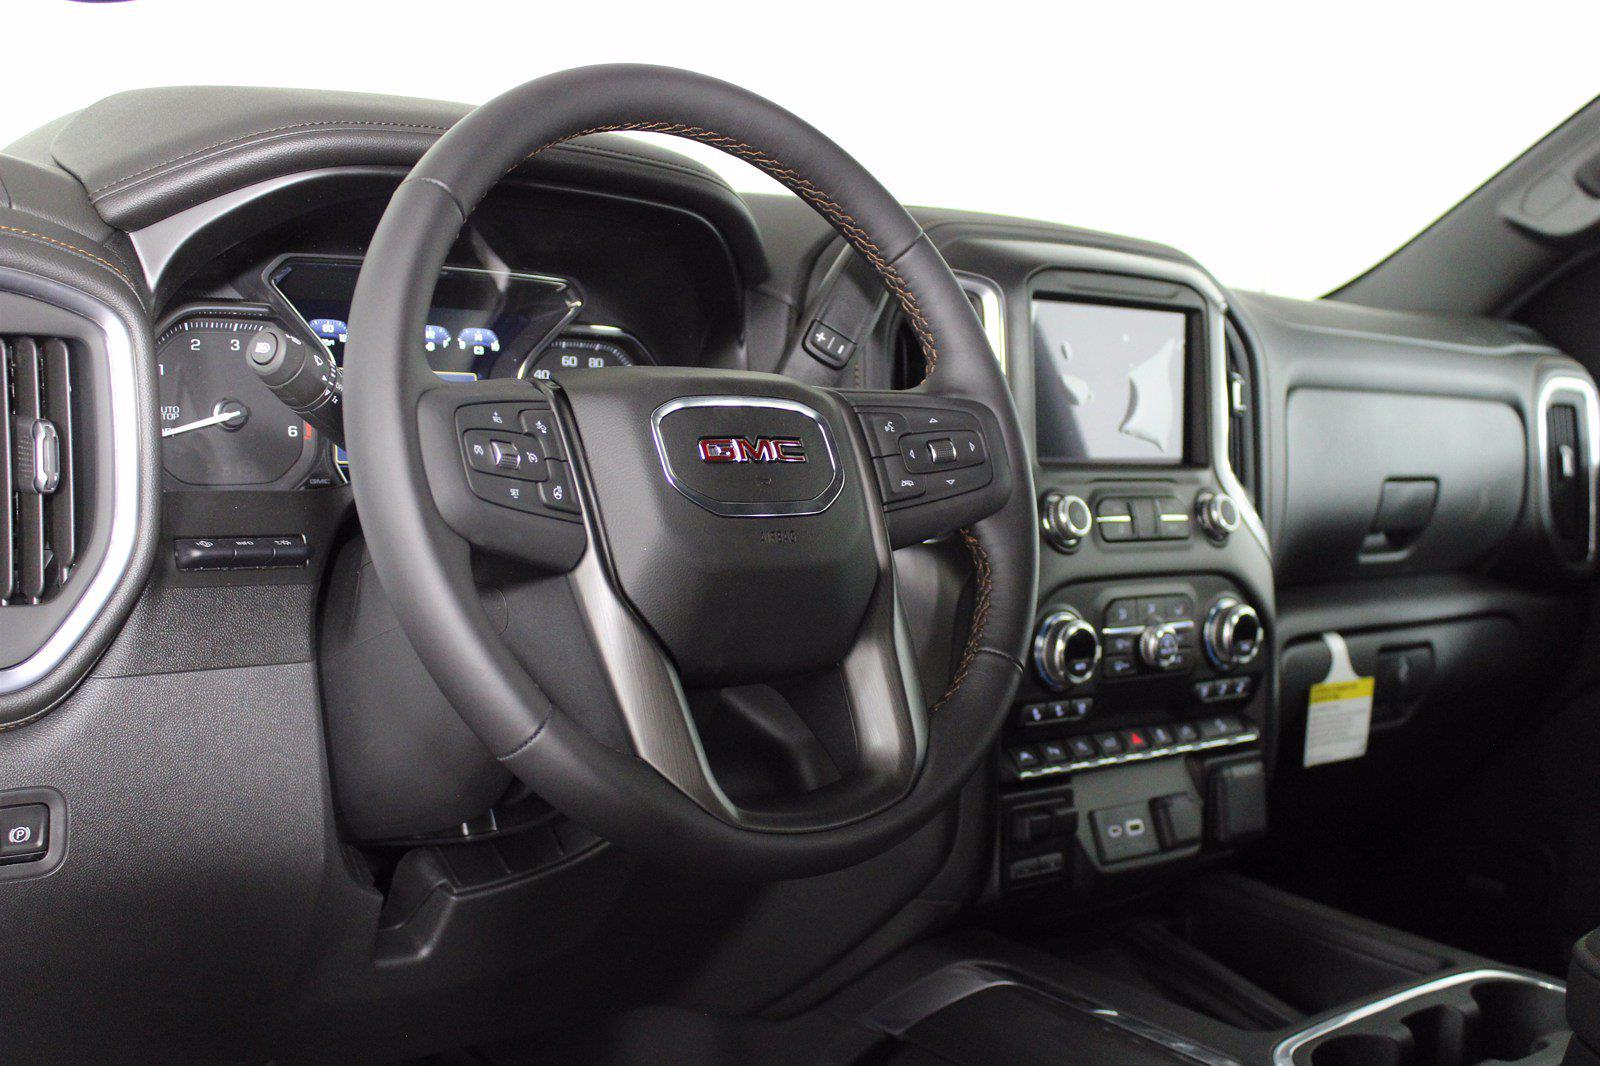 2021 GMC Sierra 1500 Crew Cab 4x4, Pickup #D410846 - photo 10